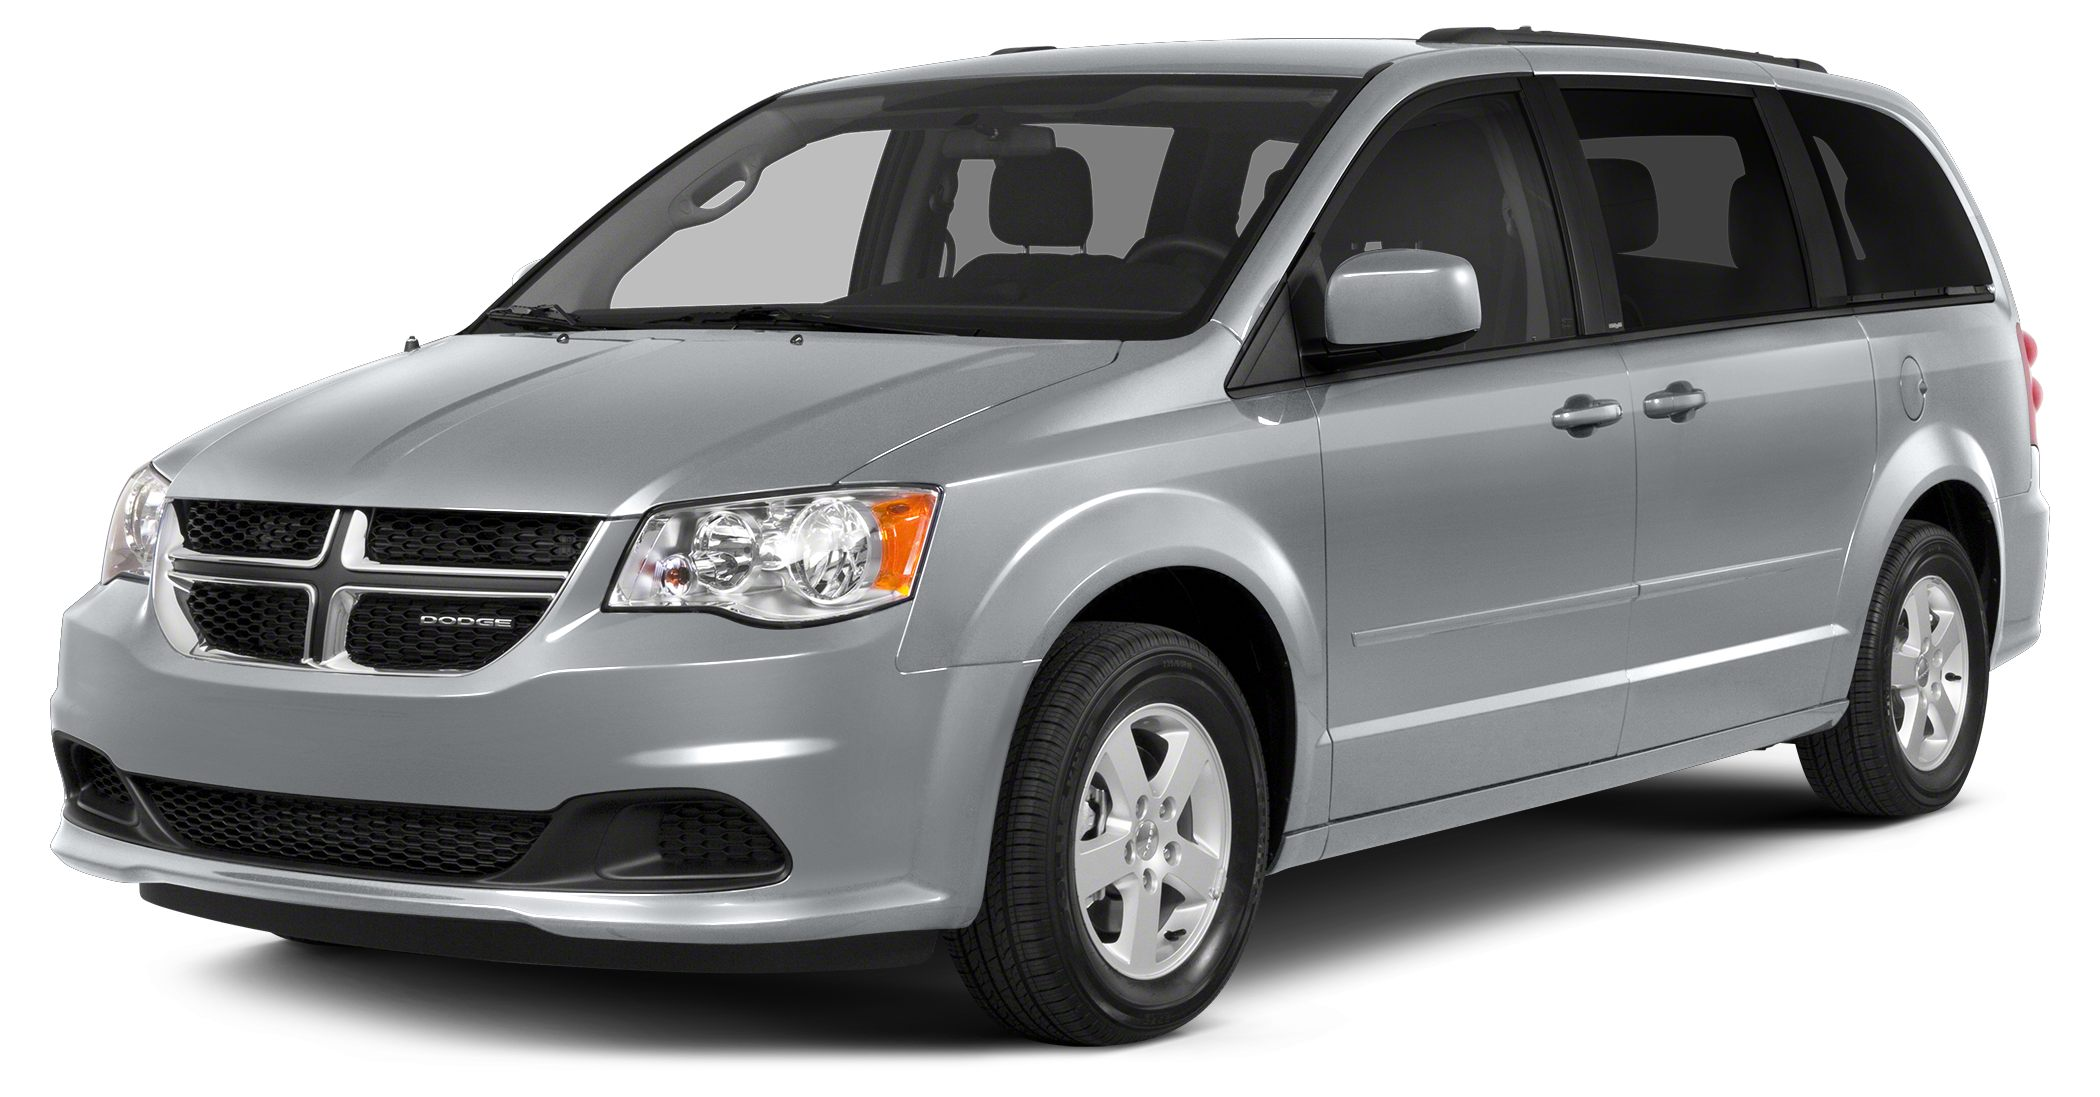 2015 Dodge Grand Caravan SXT  WHEN IT COMES TOEXCELLENCE IN USED CAR SALES YOU KNOW YOURE AT S